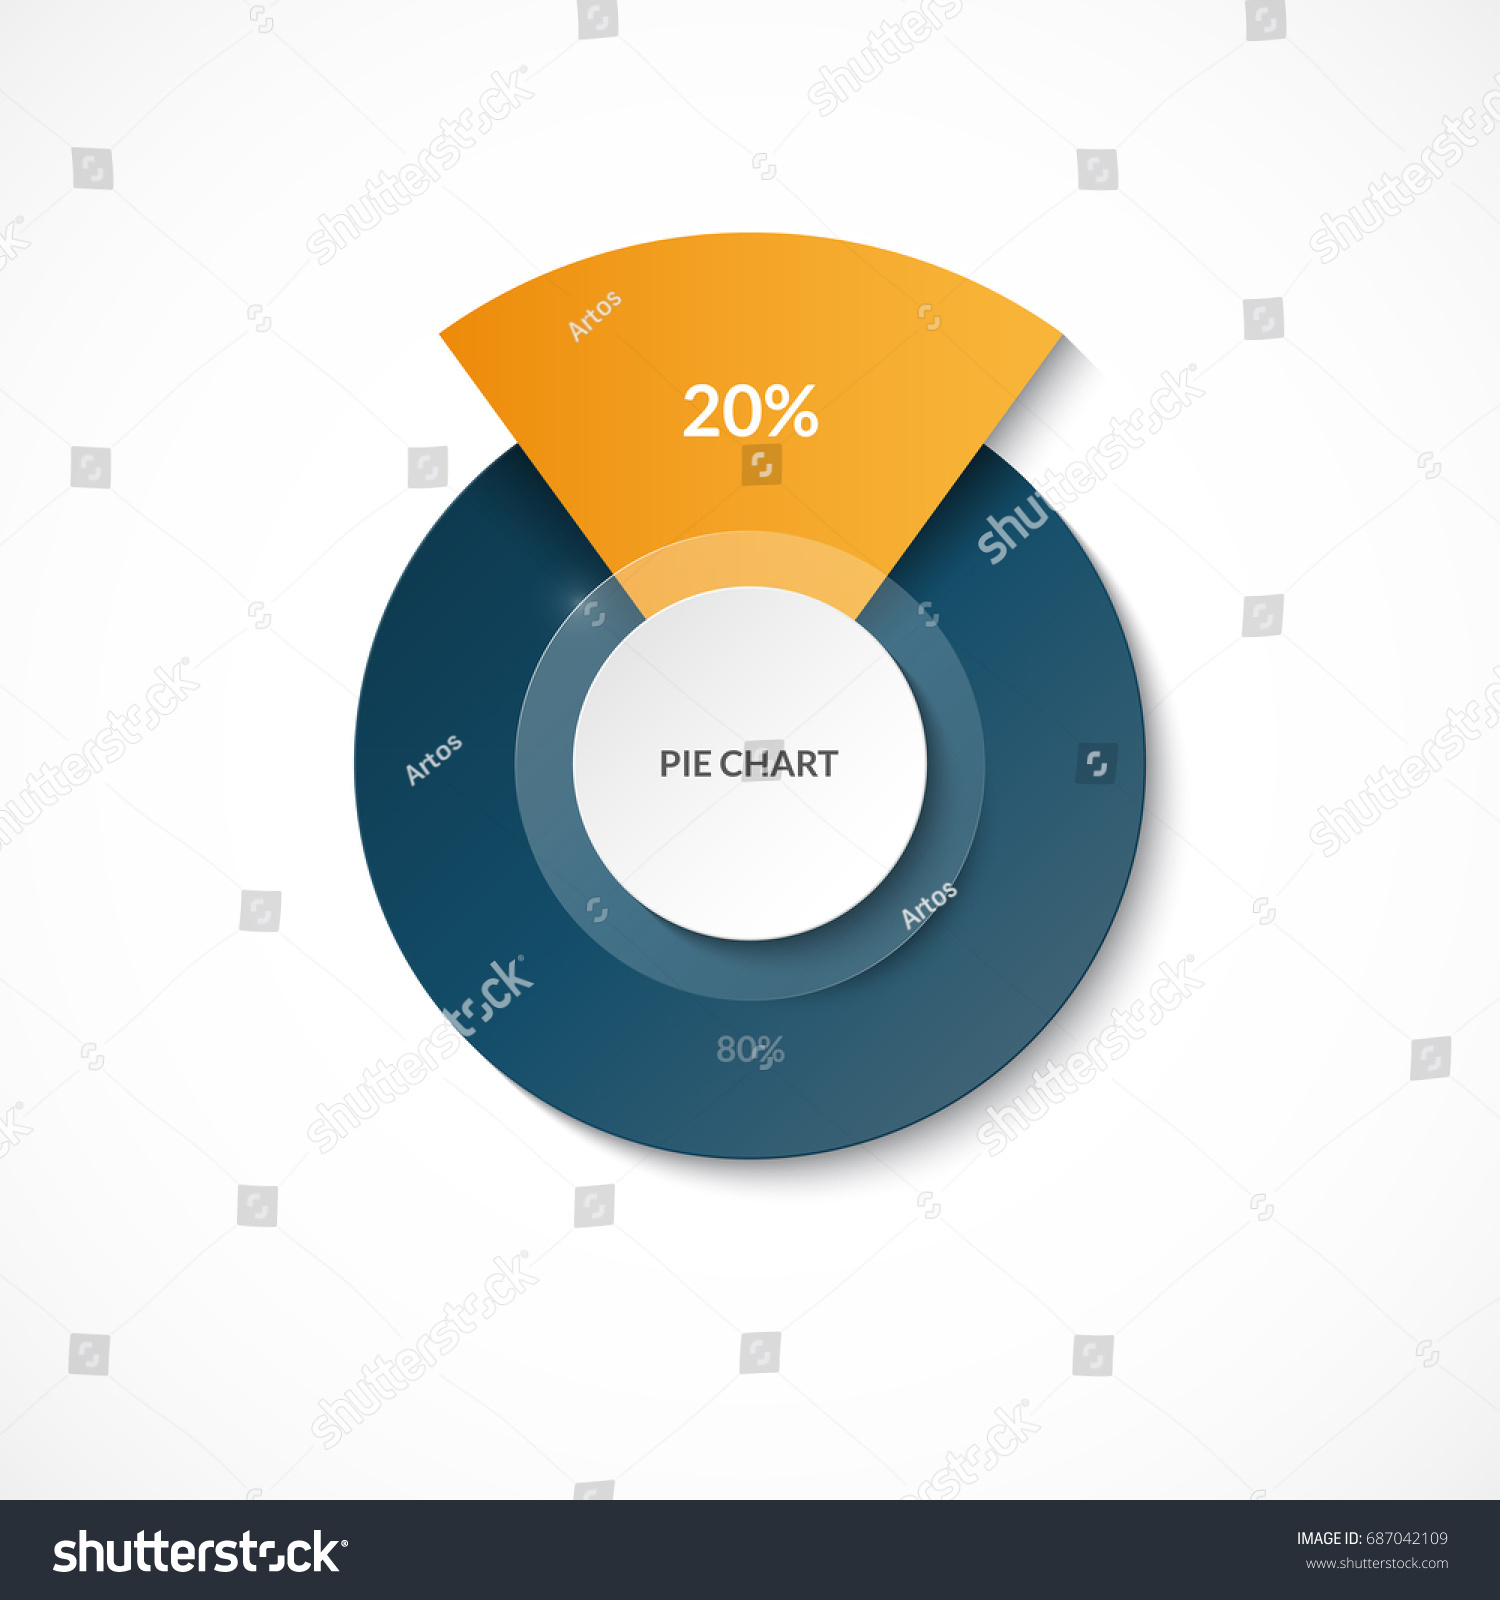 Pie chart share 20 80 circle stock vector 687042109 shutterstock pie chart share of 20 and 80 circle diagram for infographics nvjuhfo Image collections